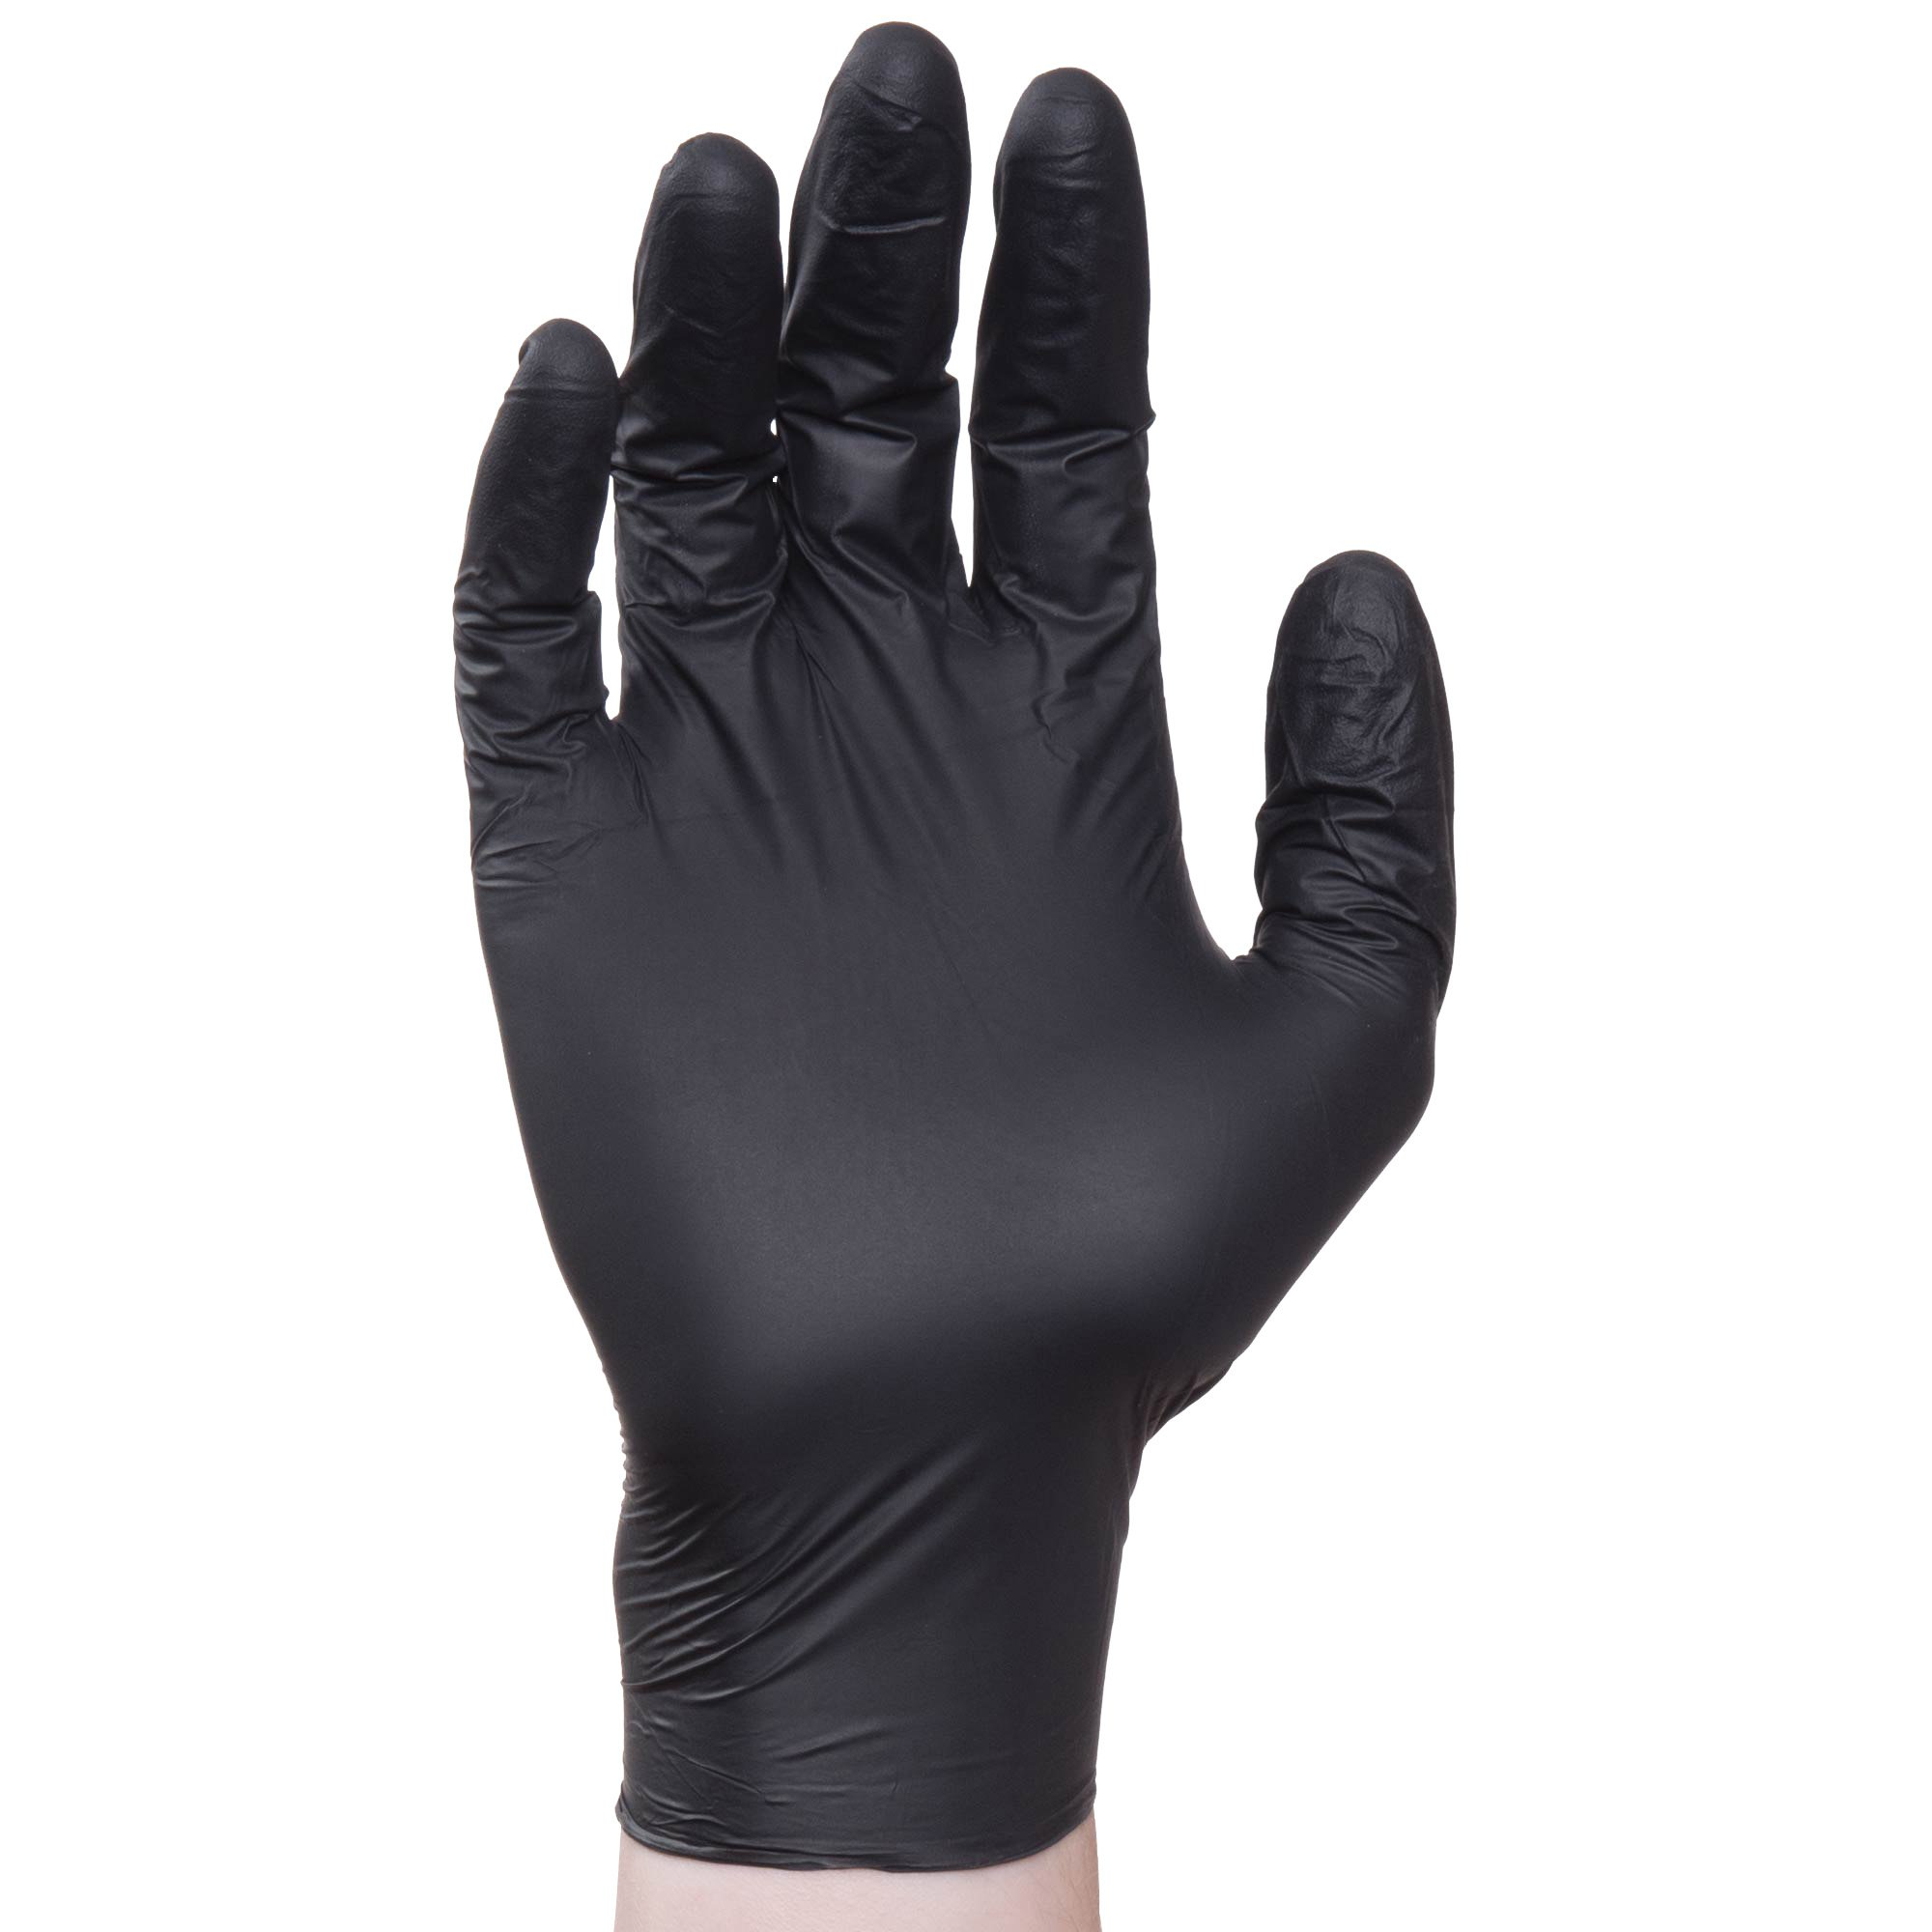 Elara FNE202BK EverfitBLACK Disposable Nitrile Glove, Extra Comfort, 3.3 mil, Black Color, Latex Free, PVC Free, BPA Free, Powder Free, Food Service, Industrial, Janitorial, Medium (Case of 1000)